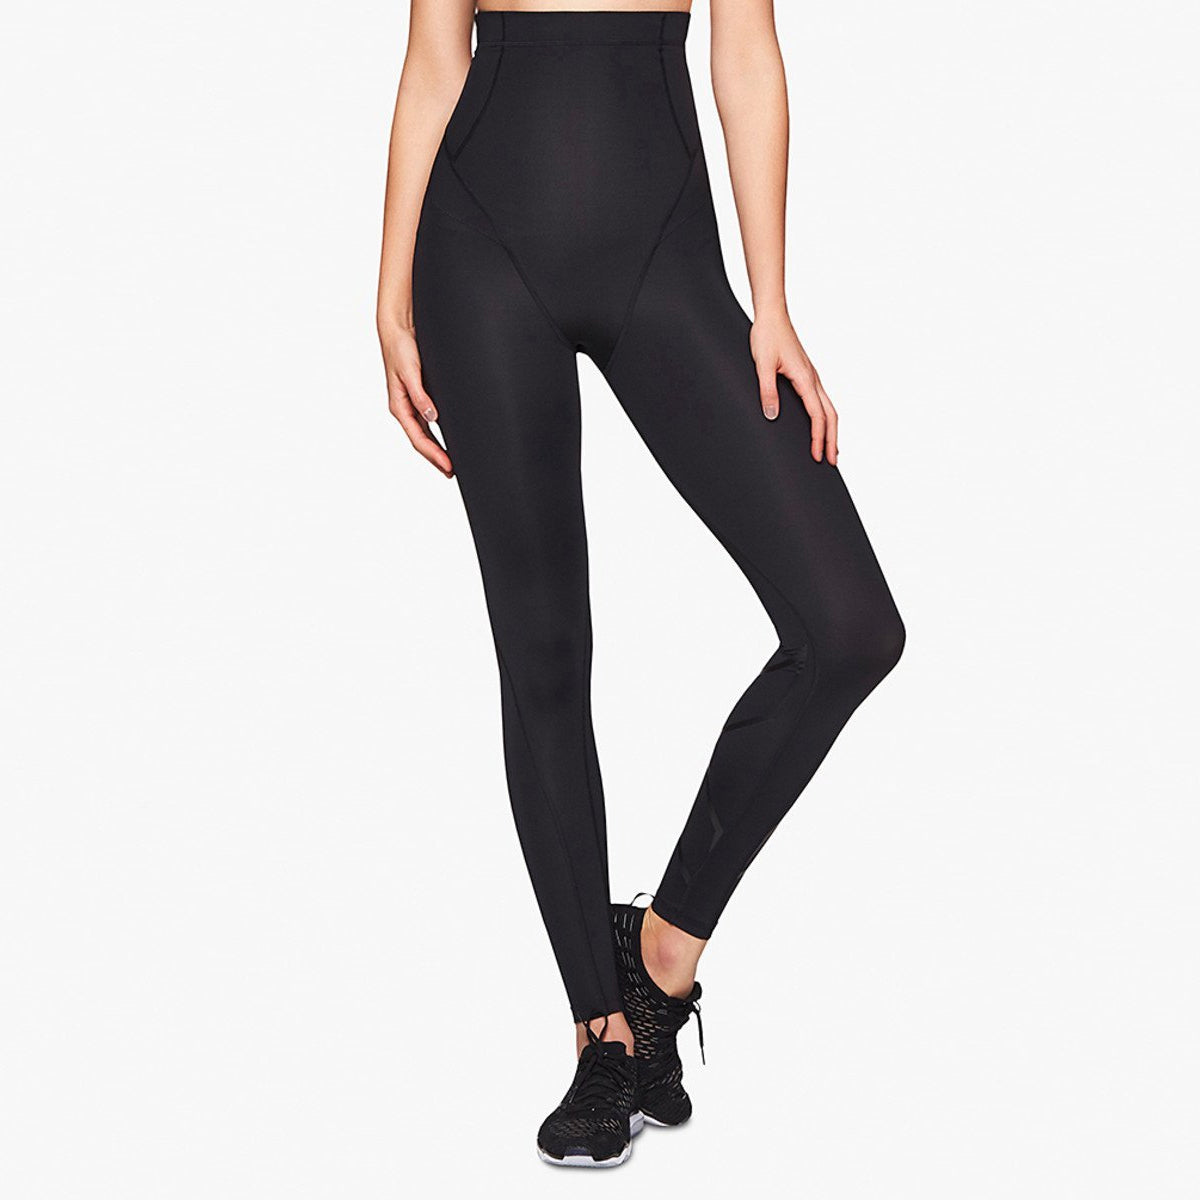 ededfb4c12fe0 2XU Postnatal Active Recovery Compression Tights - Maternity Angel